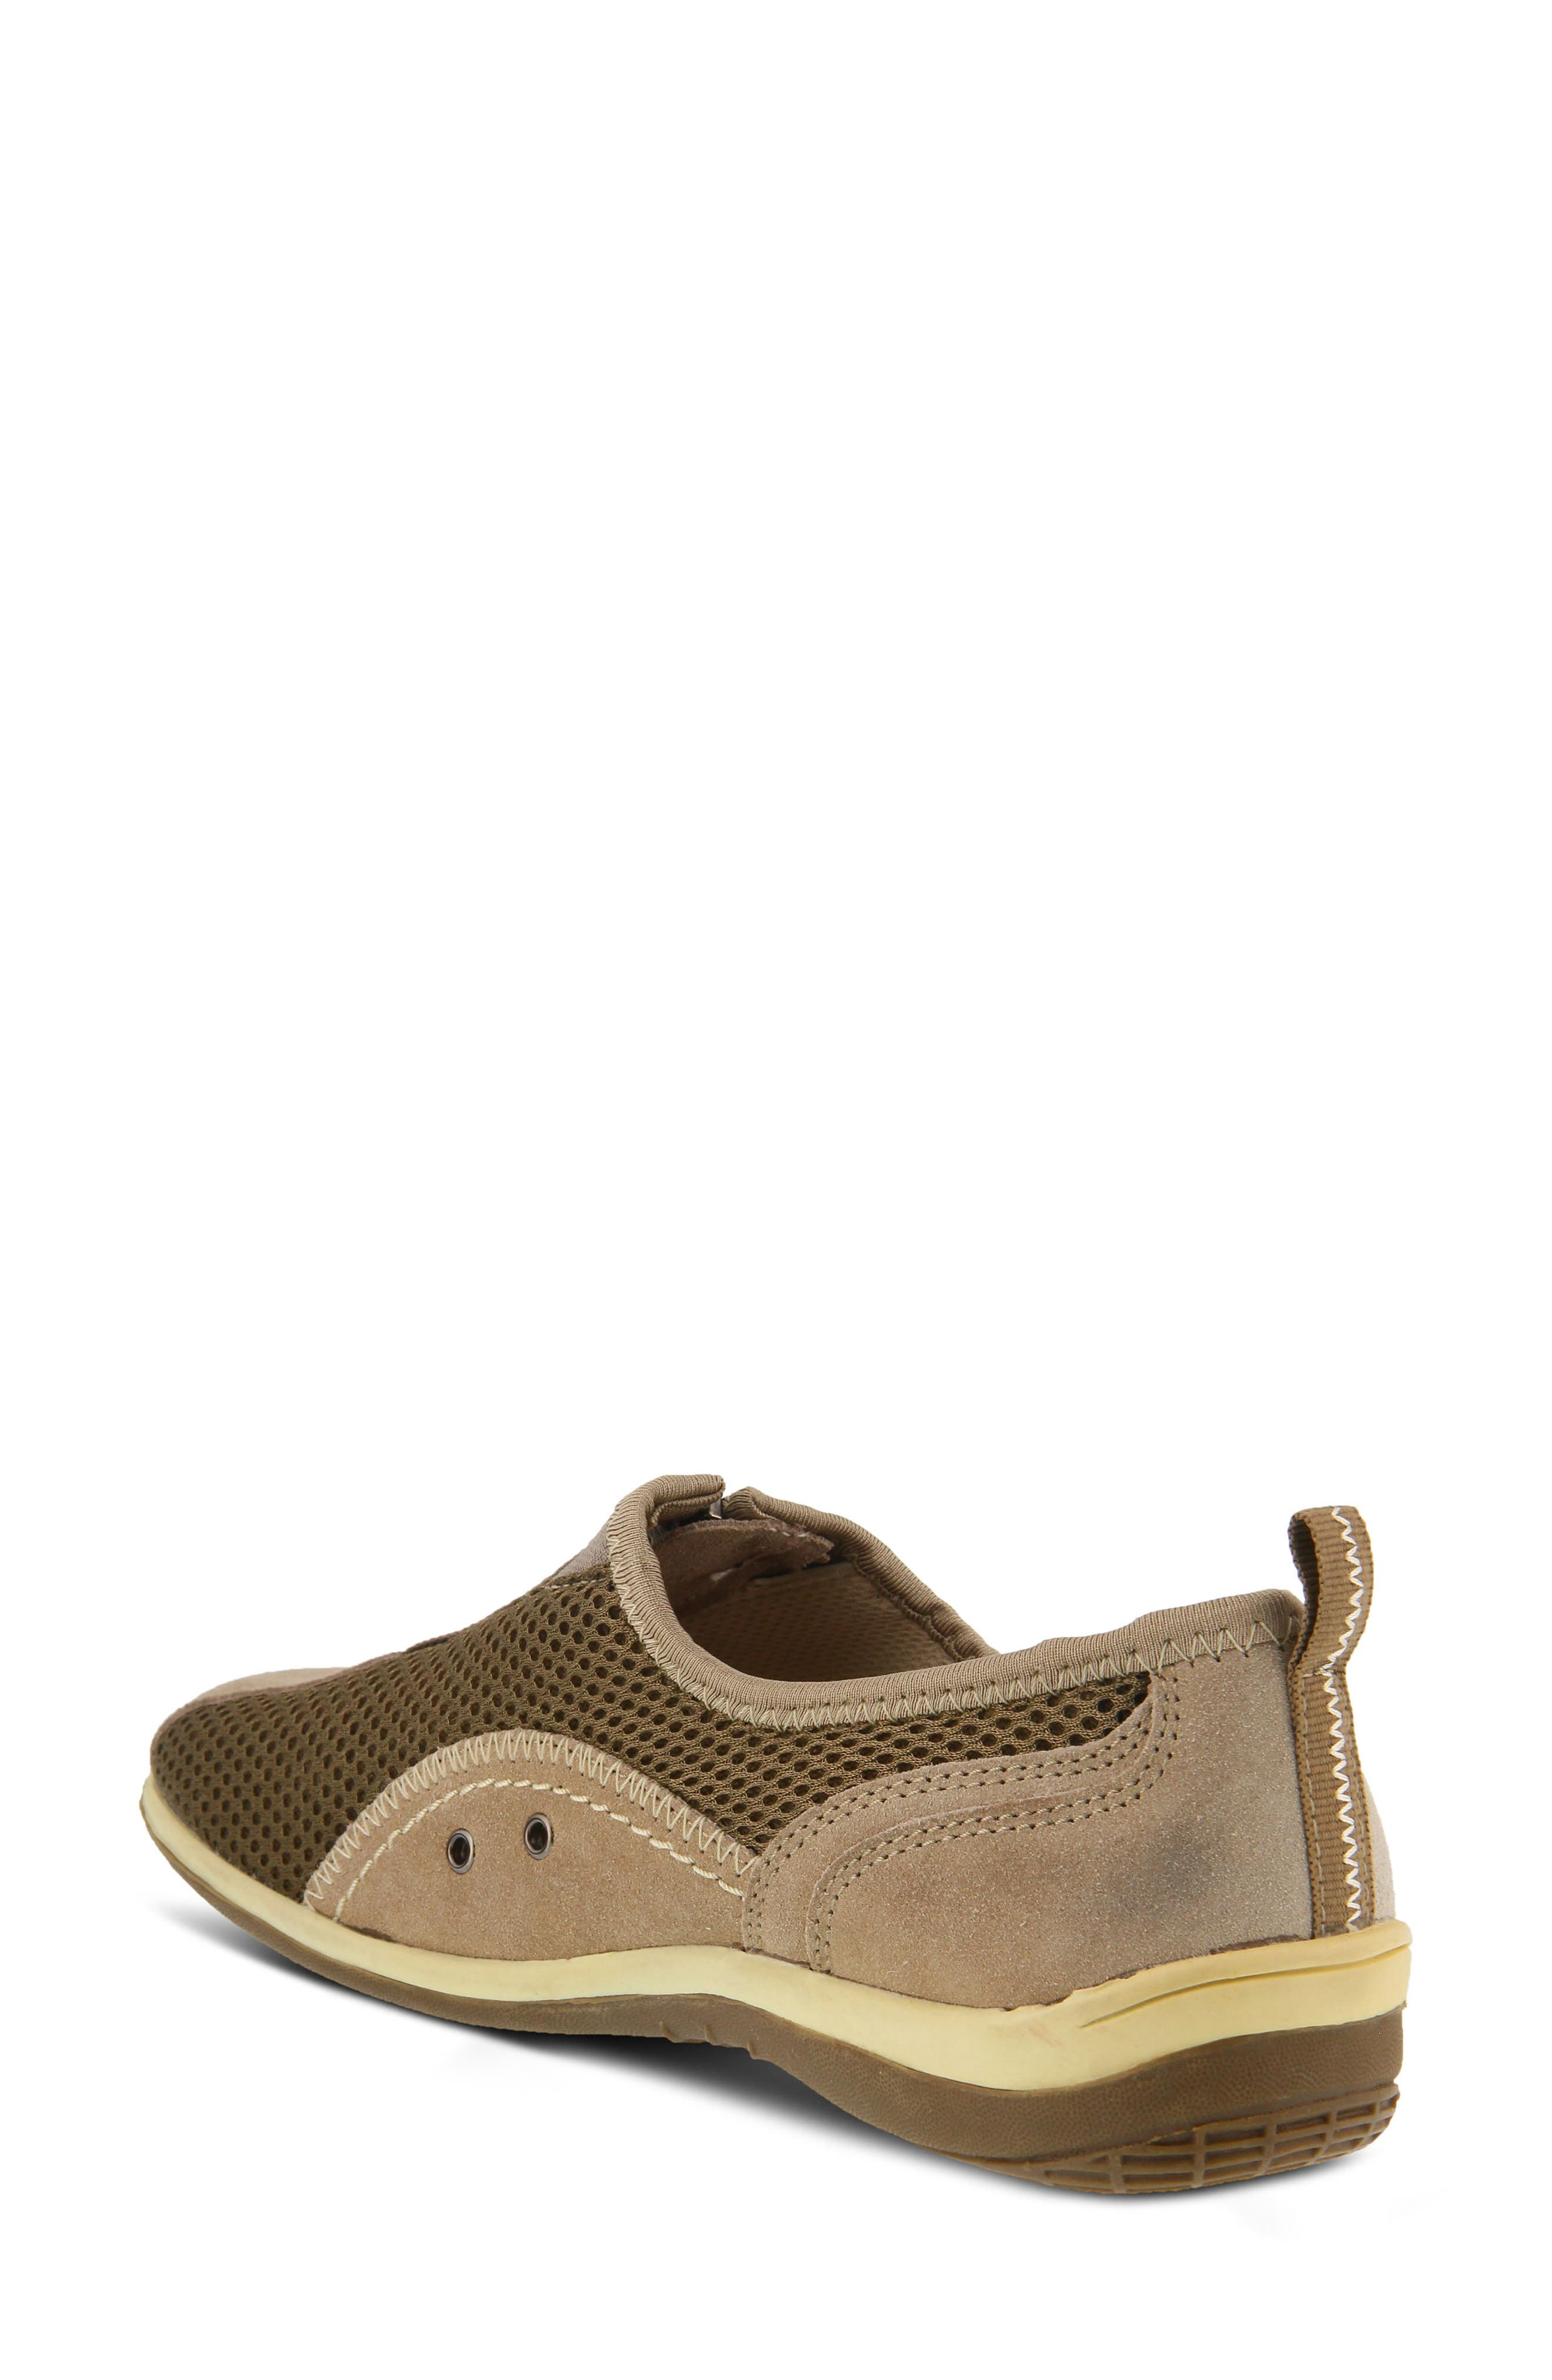 Racer Slip-On Sneaker,                             Alternate thumbnail 2, color,                             Taupe Suede